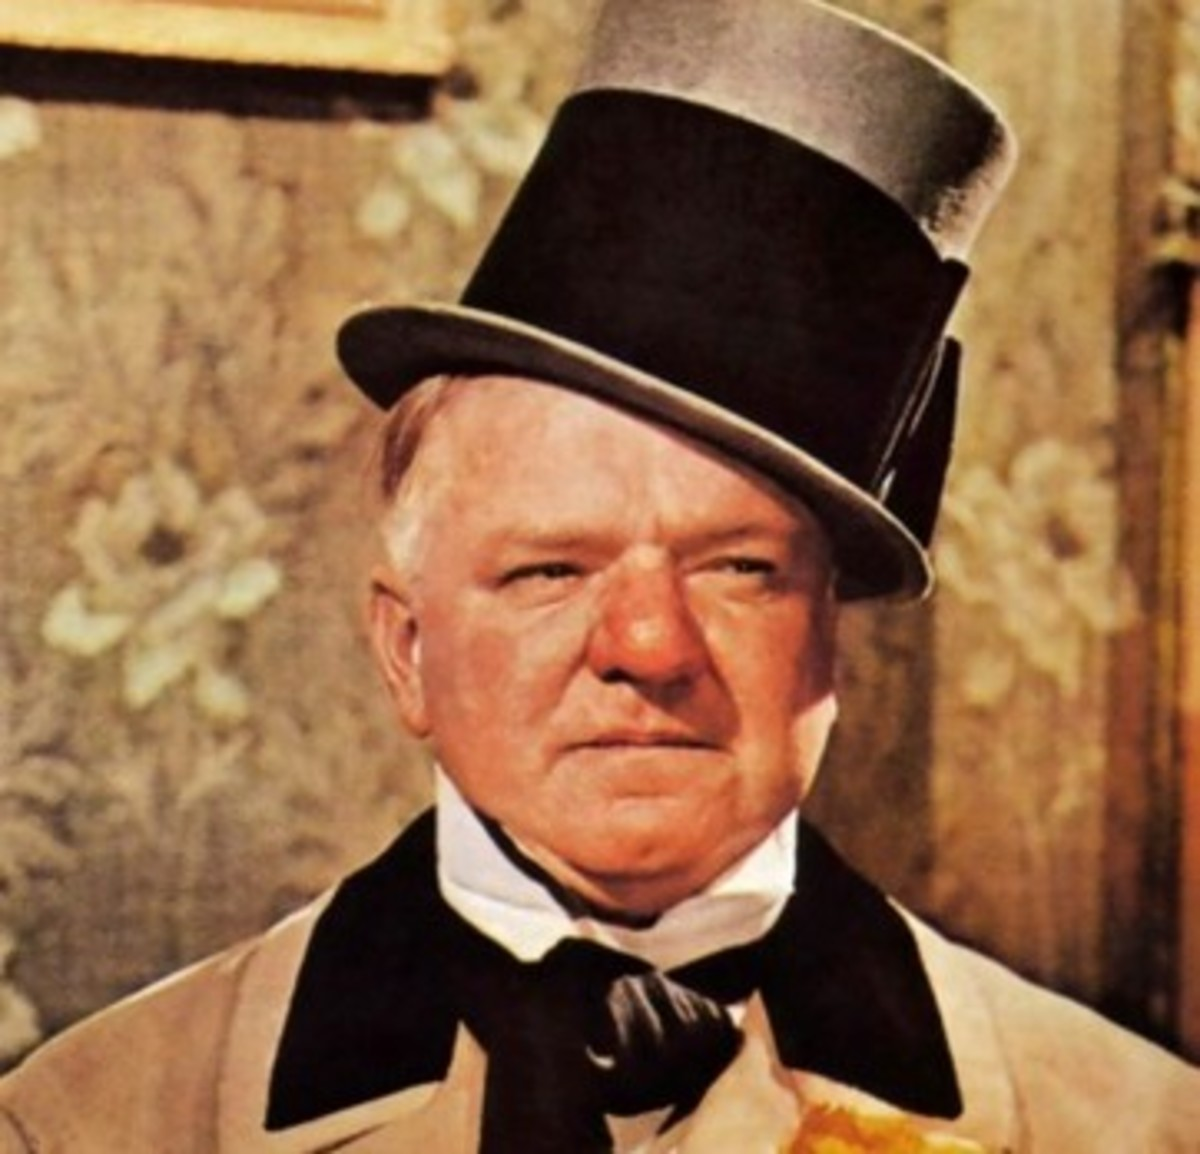 W.C. Fields was known for never being not-drunk